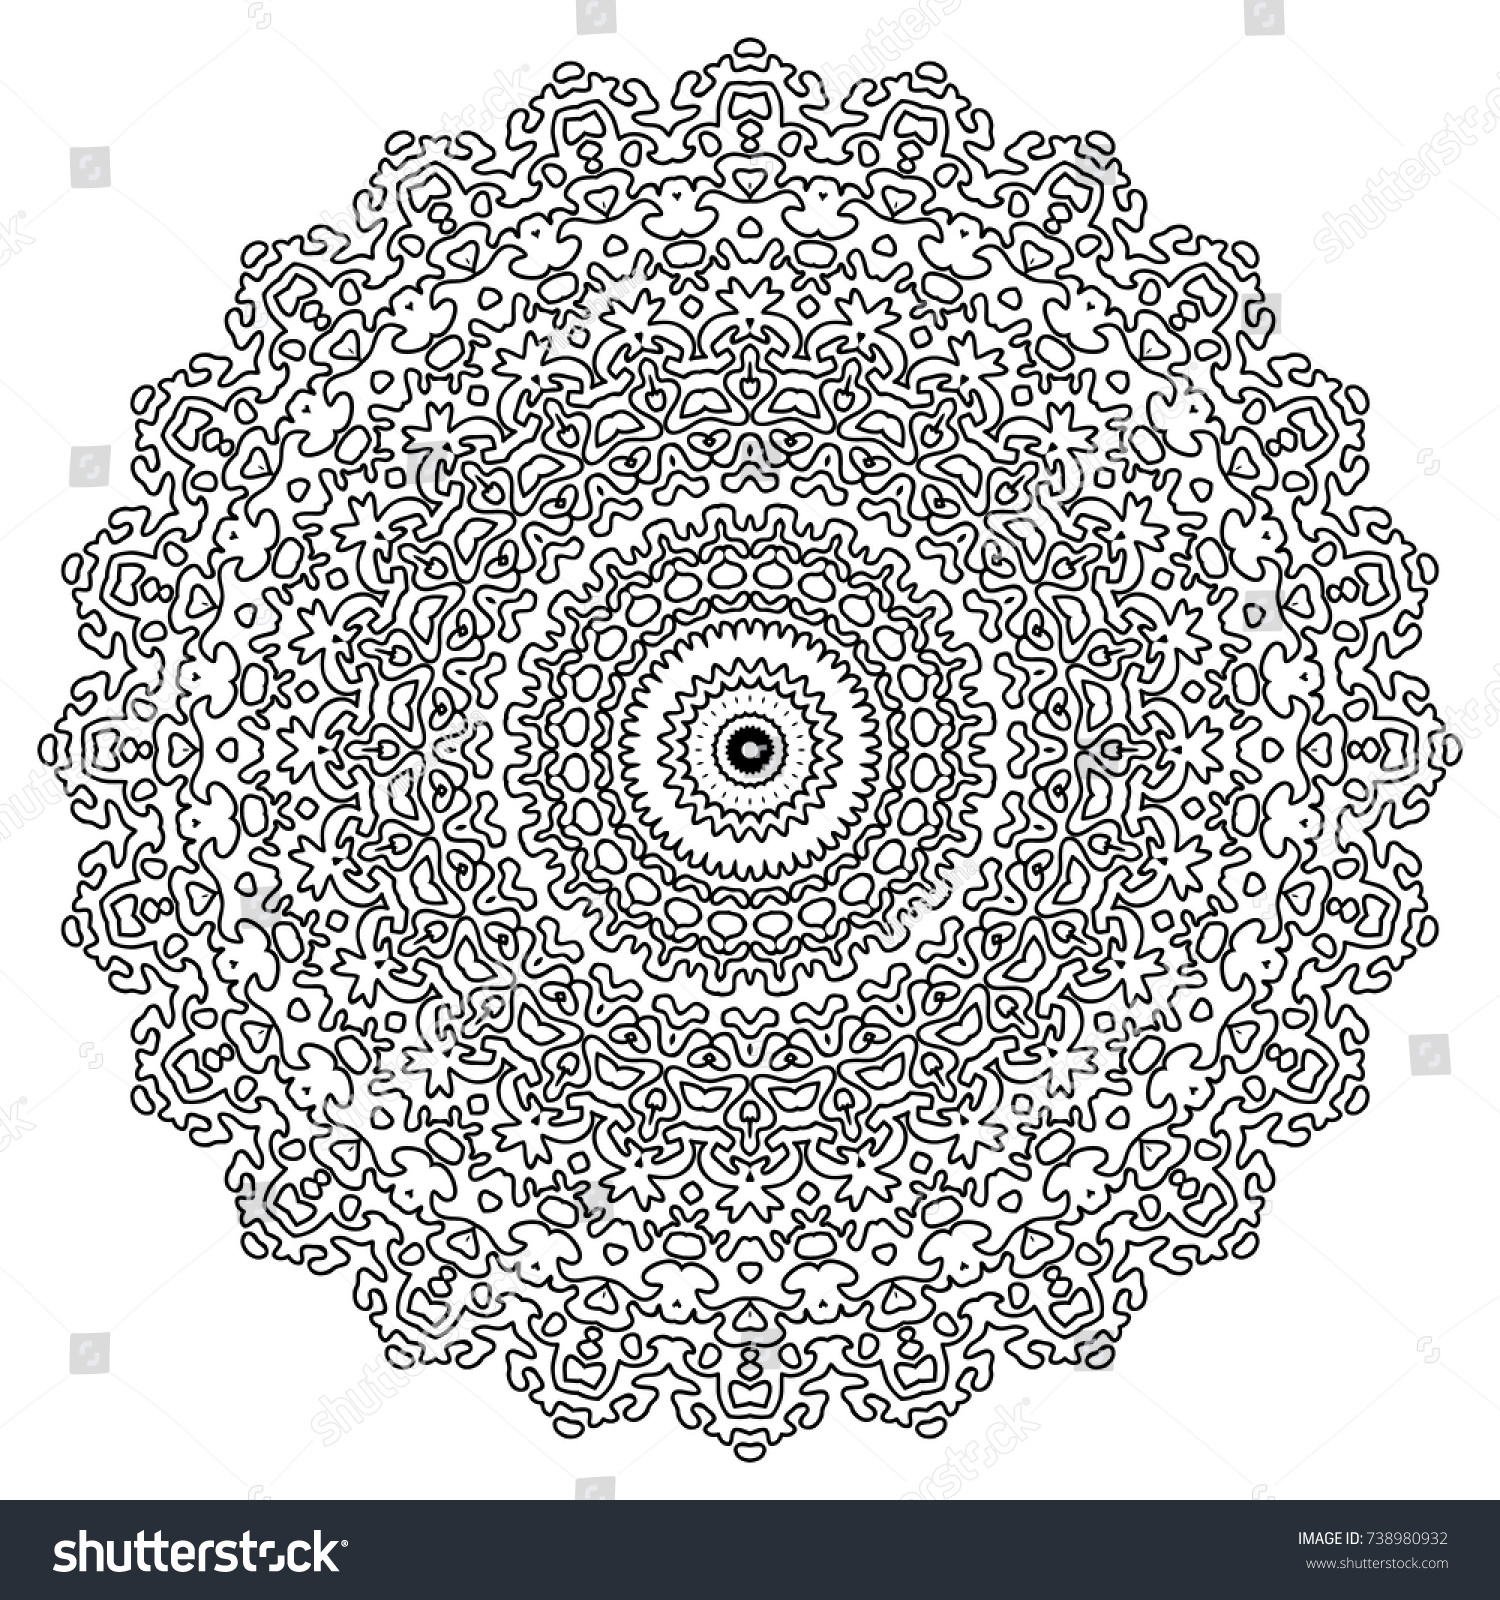 adult coloring book page mandala flourish ornament for - Art Therapy Coloring Pages Mandala